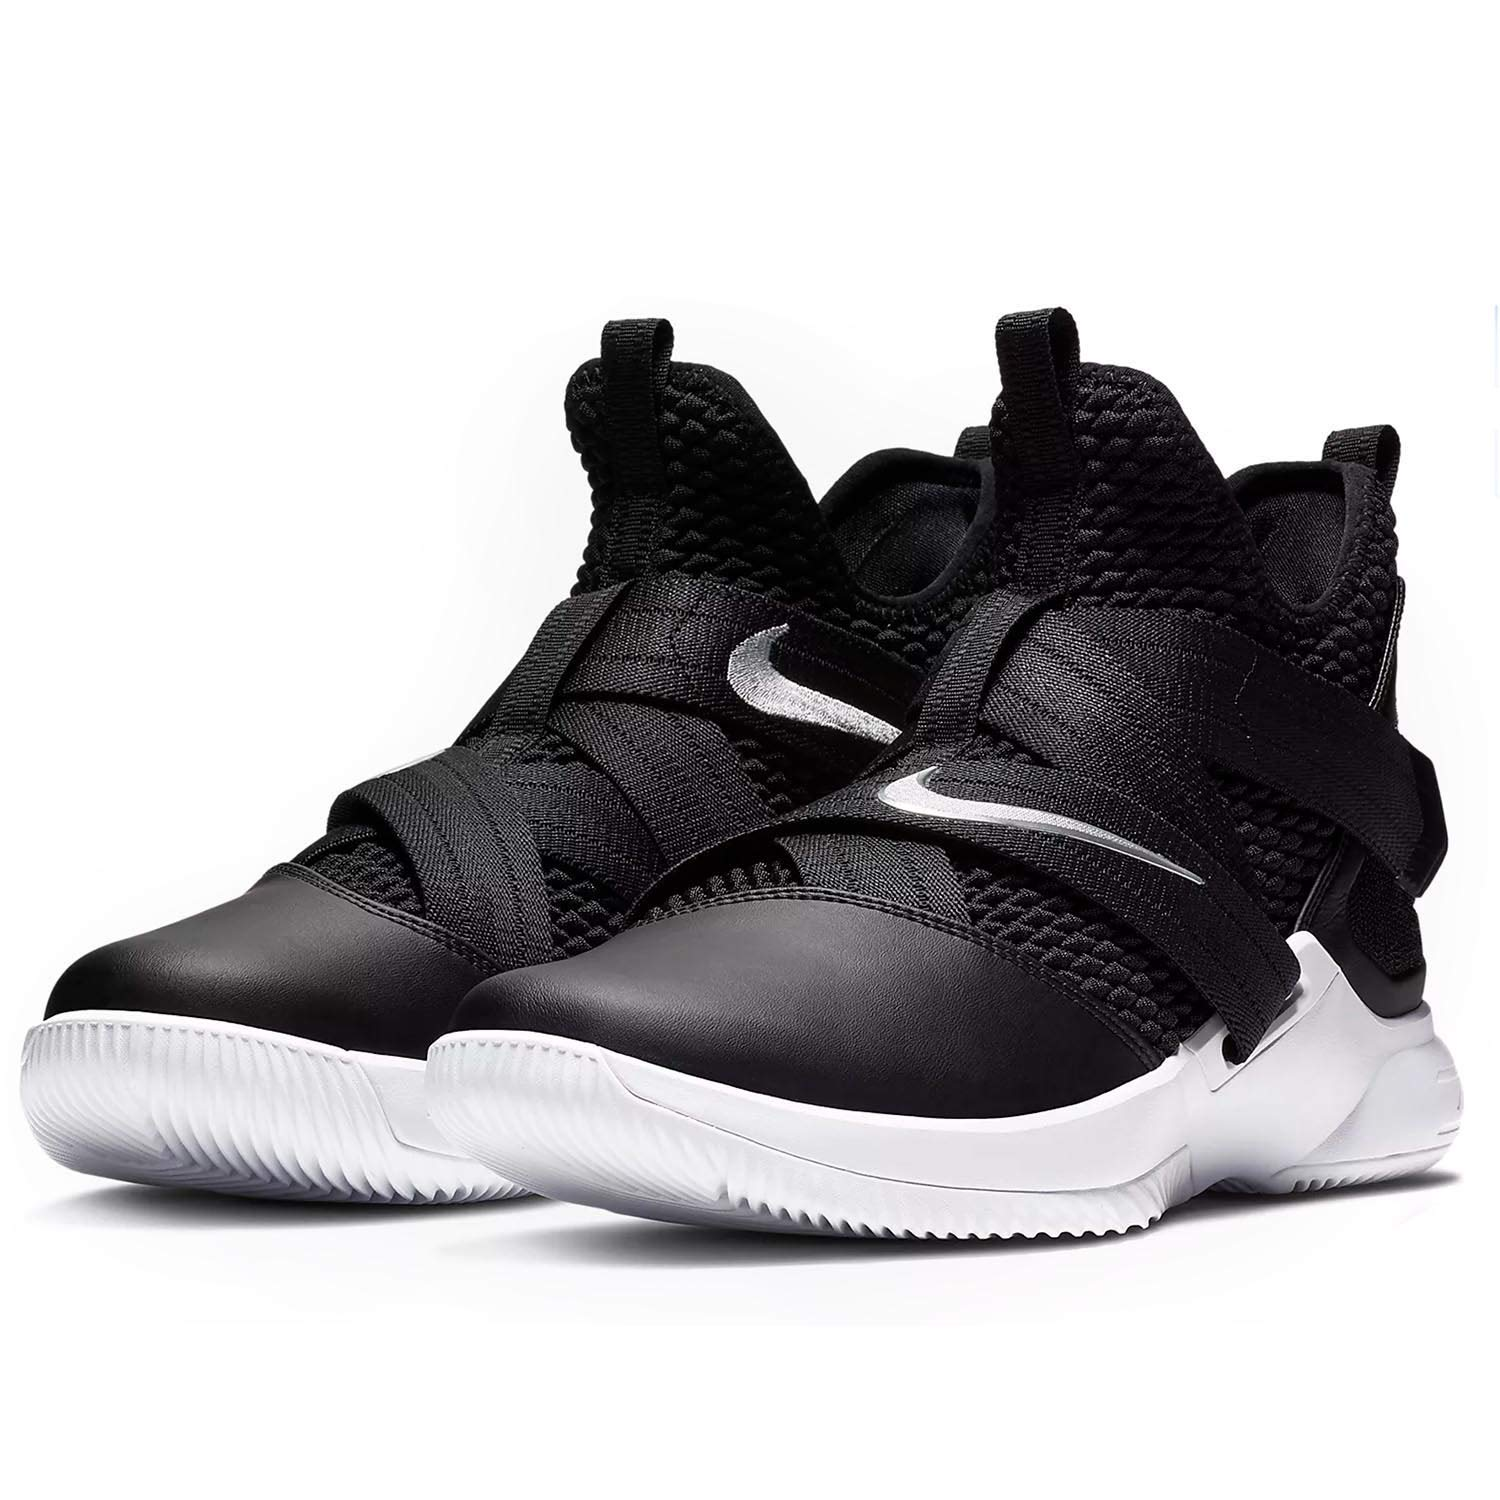 buy popular bb49f 259fa Amazon.com   Nike Men s Lebron Soldier XII Basketball Shoe   Basketball